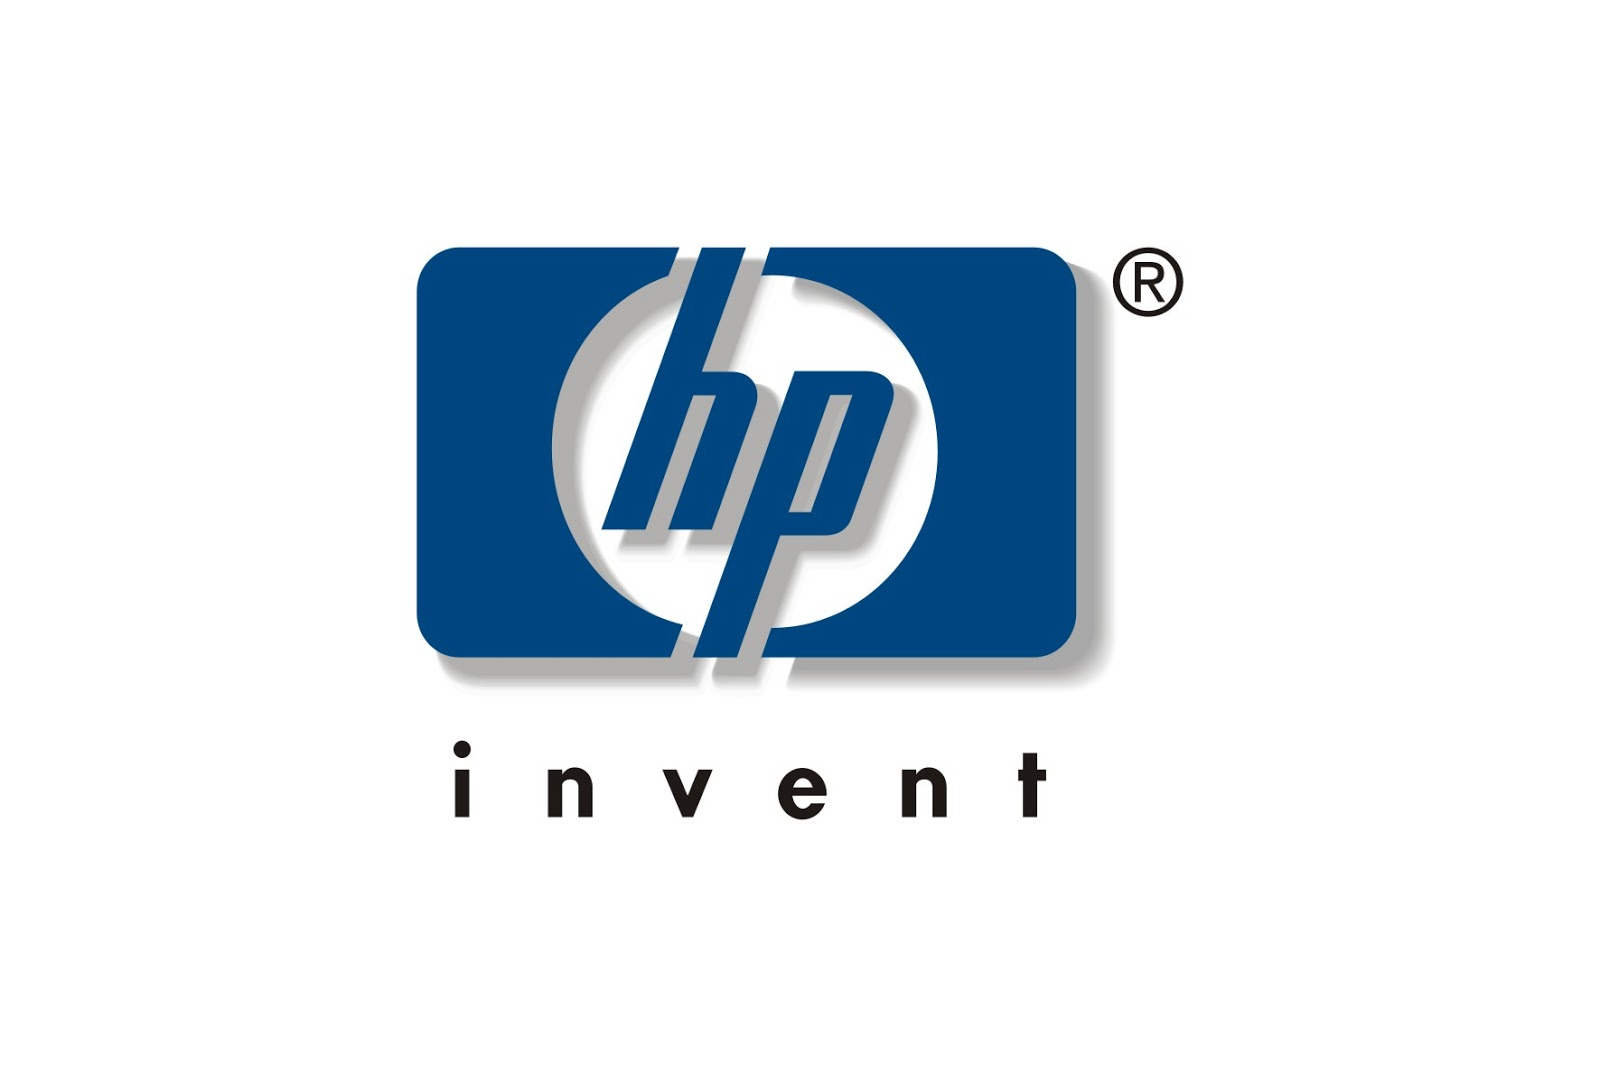 logo hewlett download packard